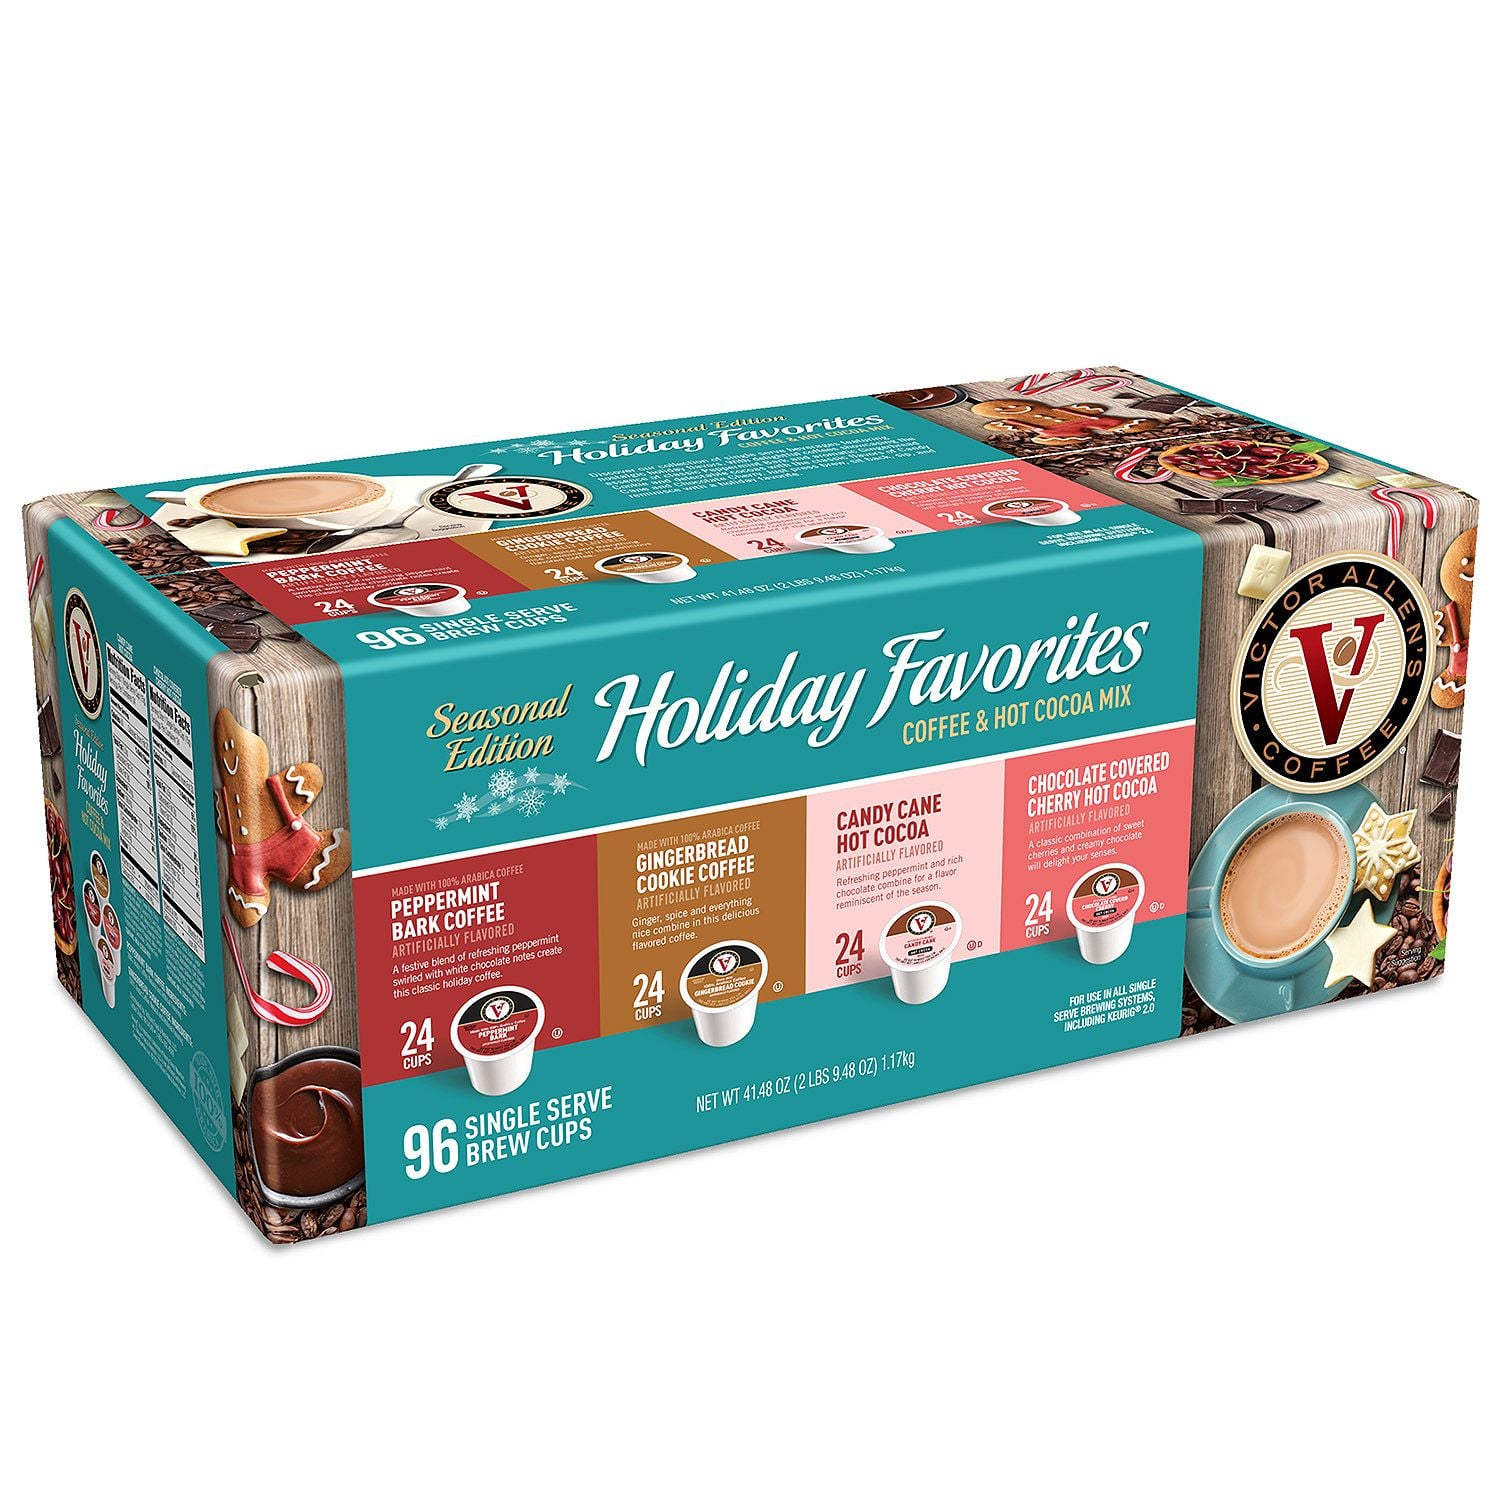 Victor Allen's Holiday Favorites Variety Pack (96 ct.)  $8.81(before tax) with free shipping requires Sam's Club membership